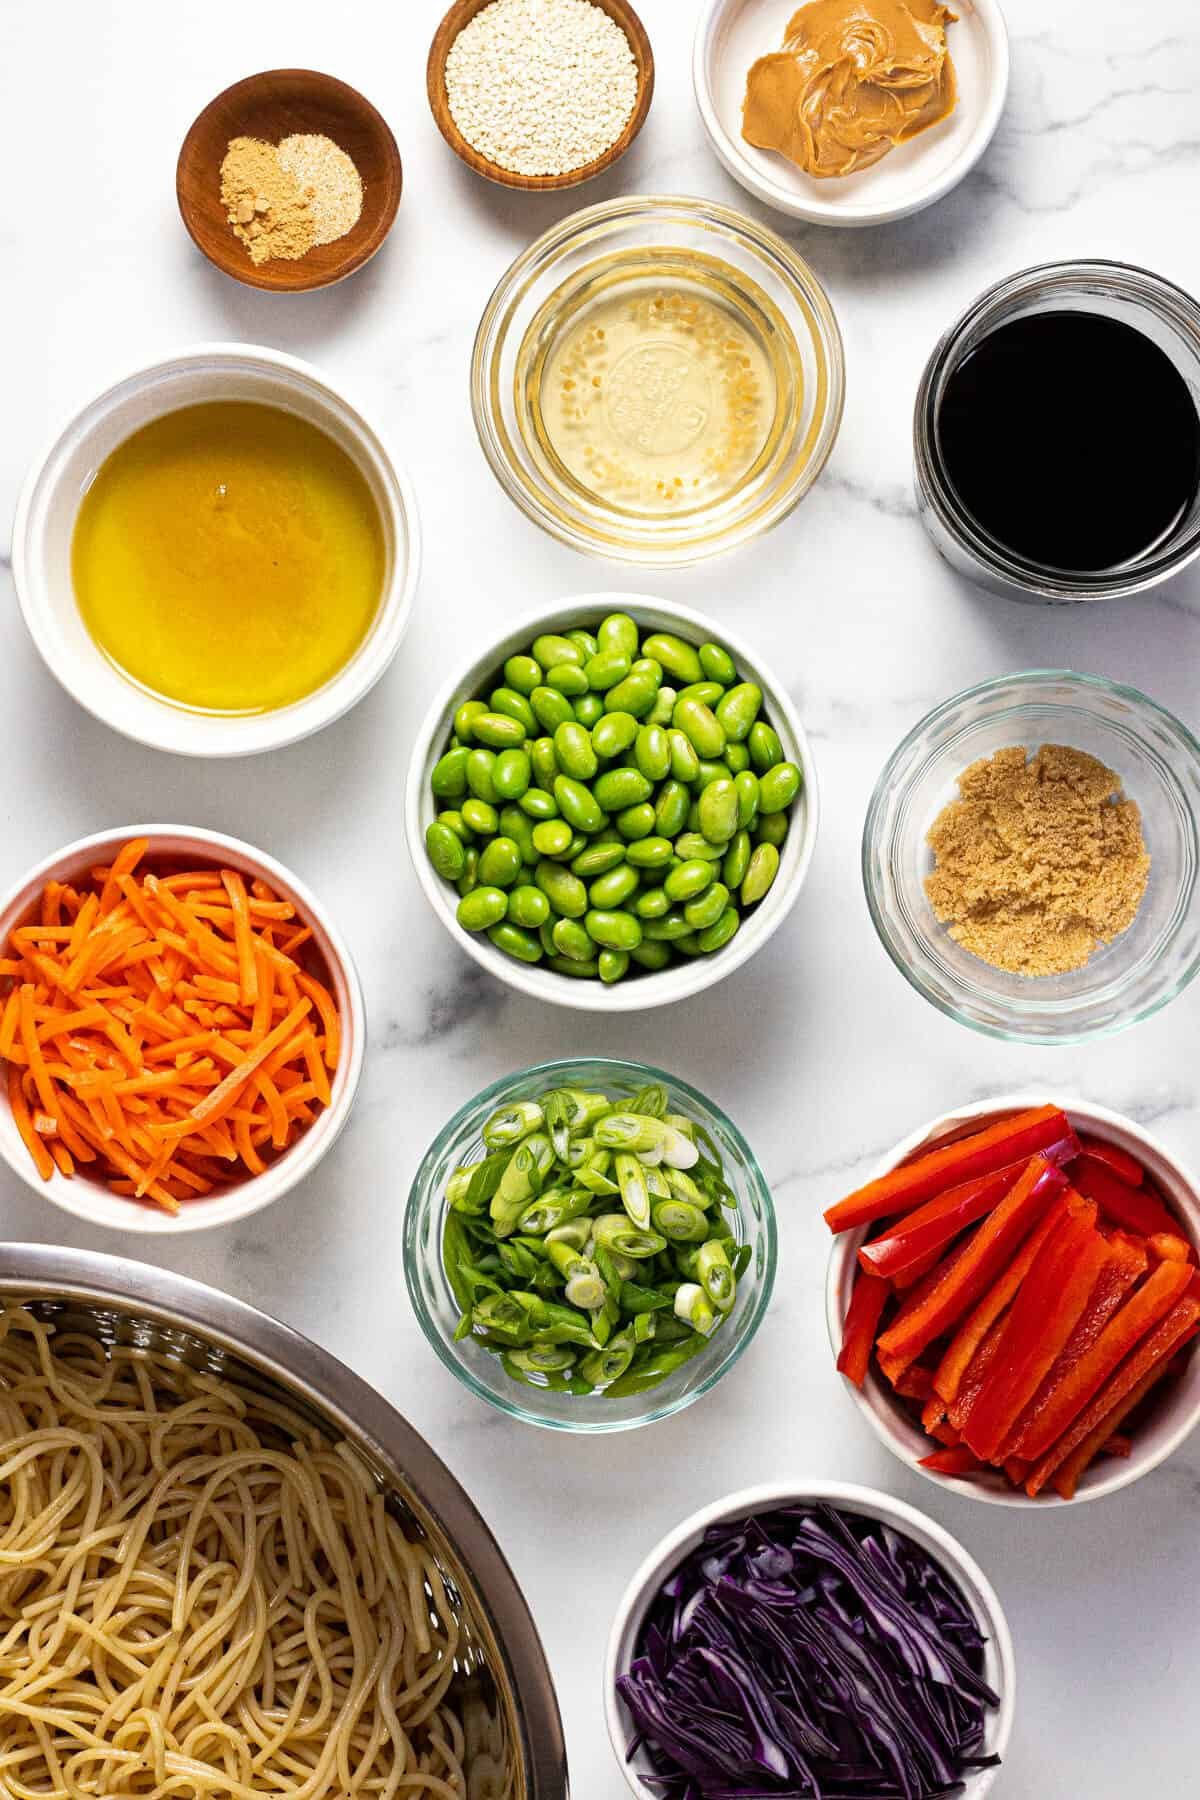 White marble counter top with ingredients to make sesame noodle salad